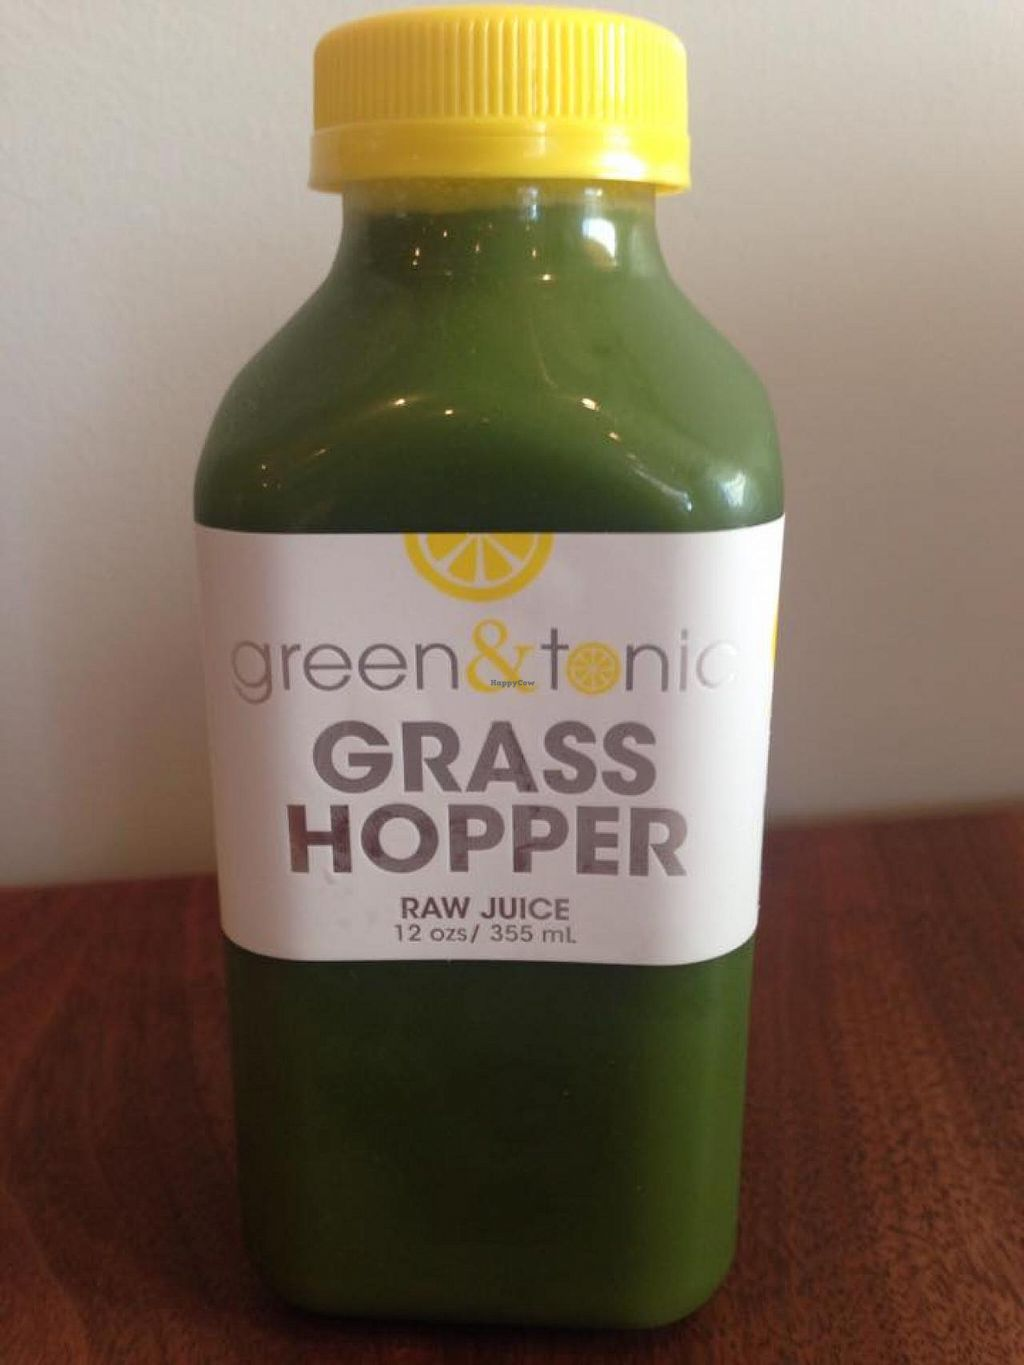 """Photo of Green & Tonic  by <a href=""""/members/profile/community"""">community</a> <br/>Green and Tonic <br/> February 24, 2015  - <a href='/contact/abuse/image/55937/93990'>Report</a>"""